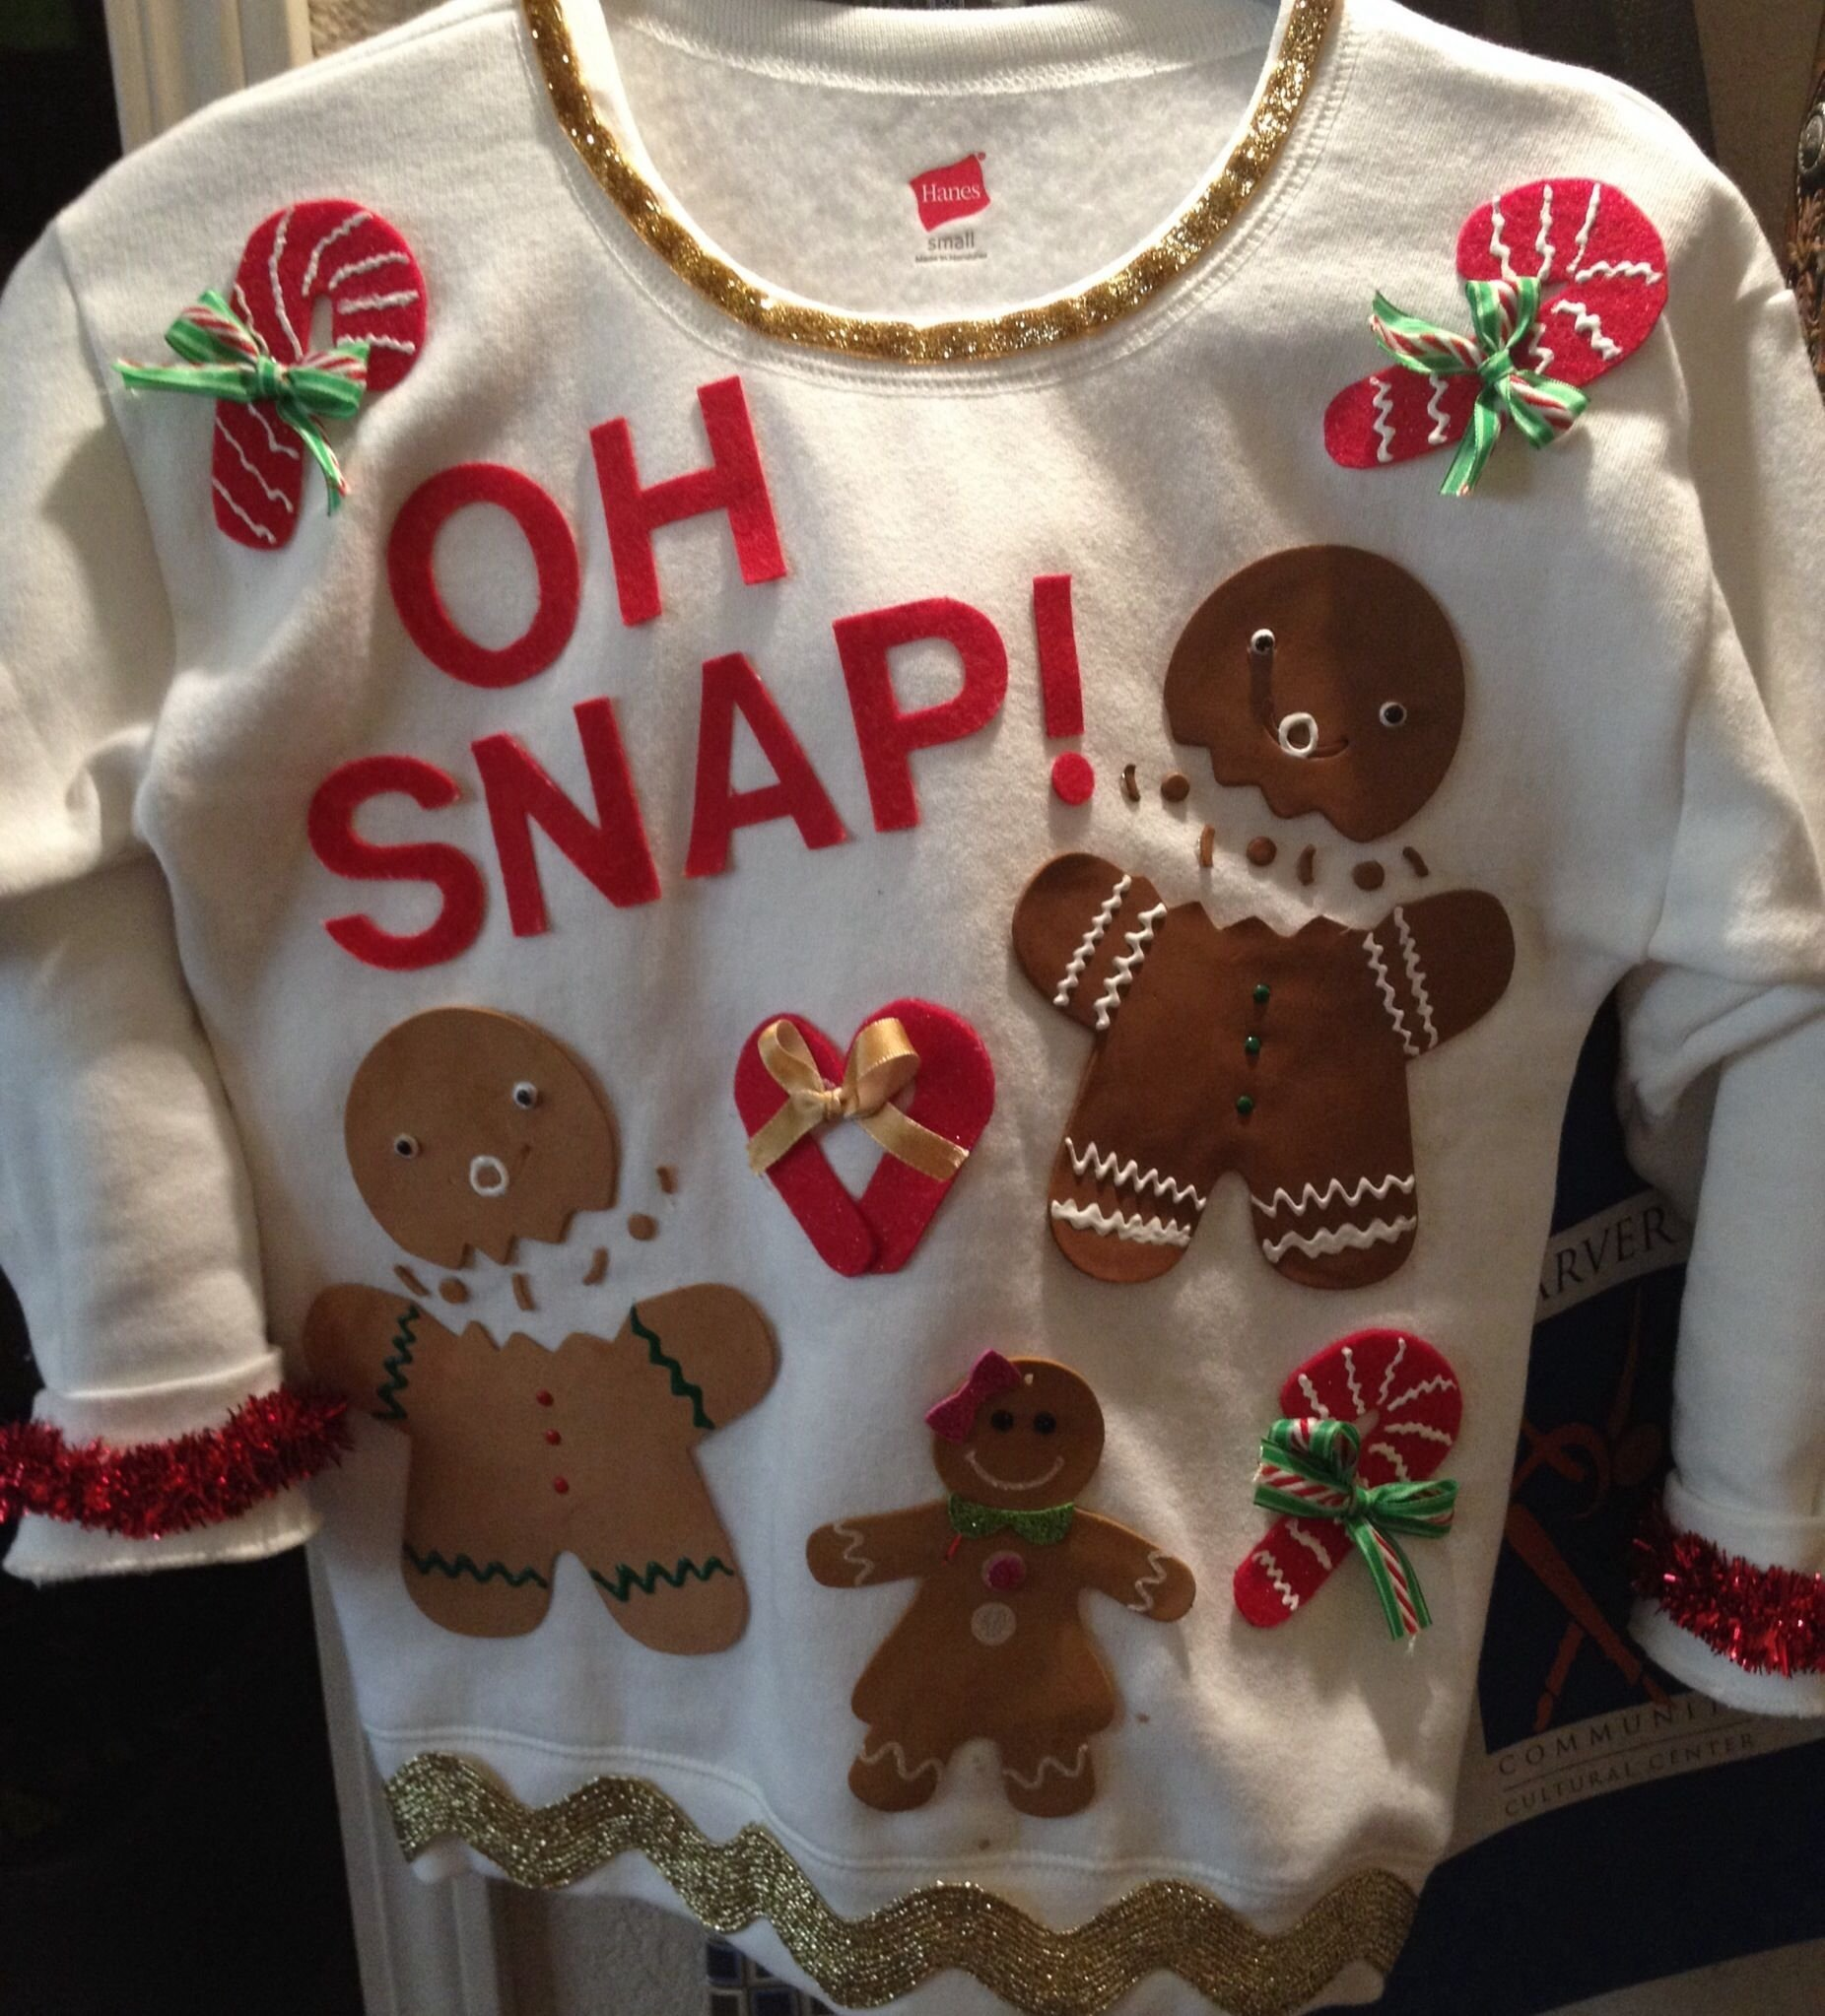 10 Stylish Ugly Christmas Sweaters Ideas Homemade ugly christmas sweater idea purchased sweatshirt at academy and 2021